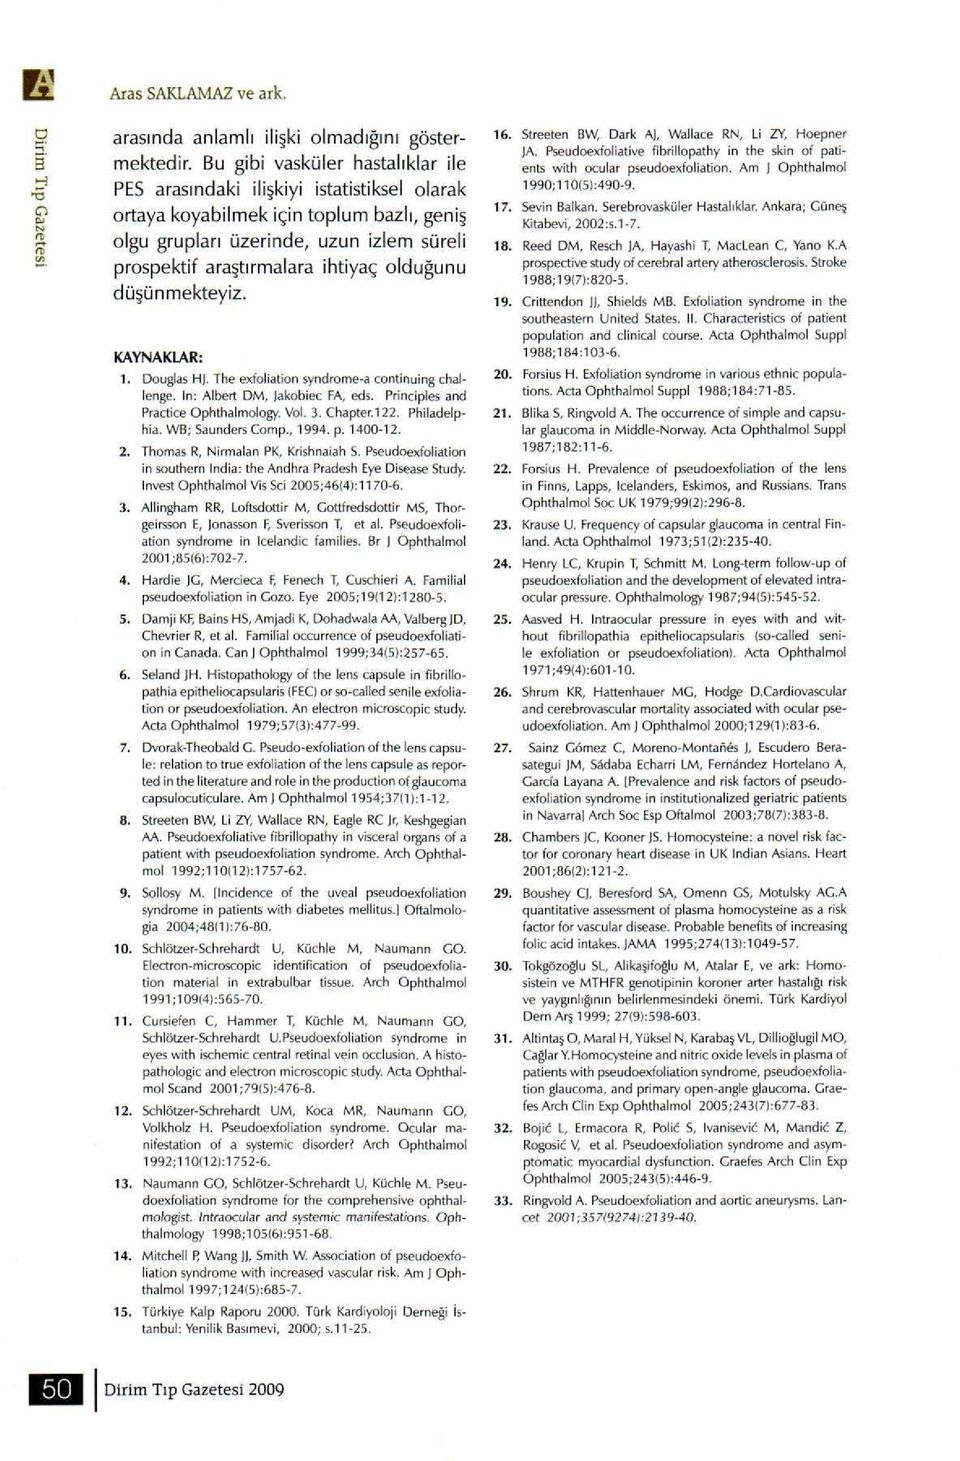 olduğunu düşünmekteyiz. KAYNAKLAR: 1. Douglas H. The exfoliation syndrome-a continuing challenge. In: Albert DM, Jakobiec FA, eds. Principles and Practice Ophthalmology. Vol. 3. Chapter.122.